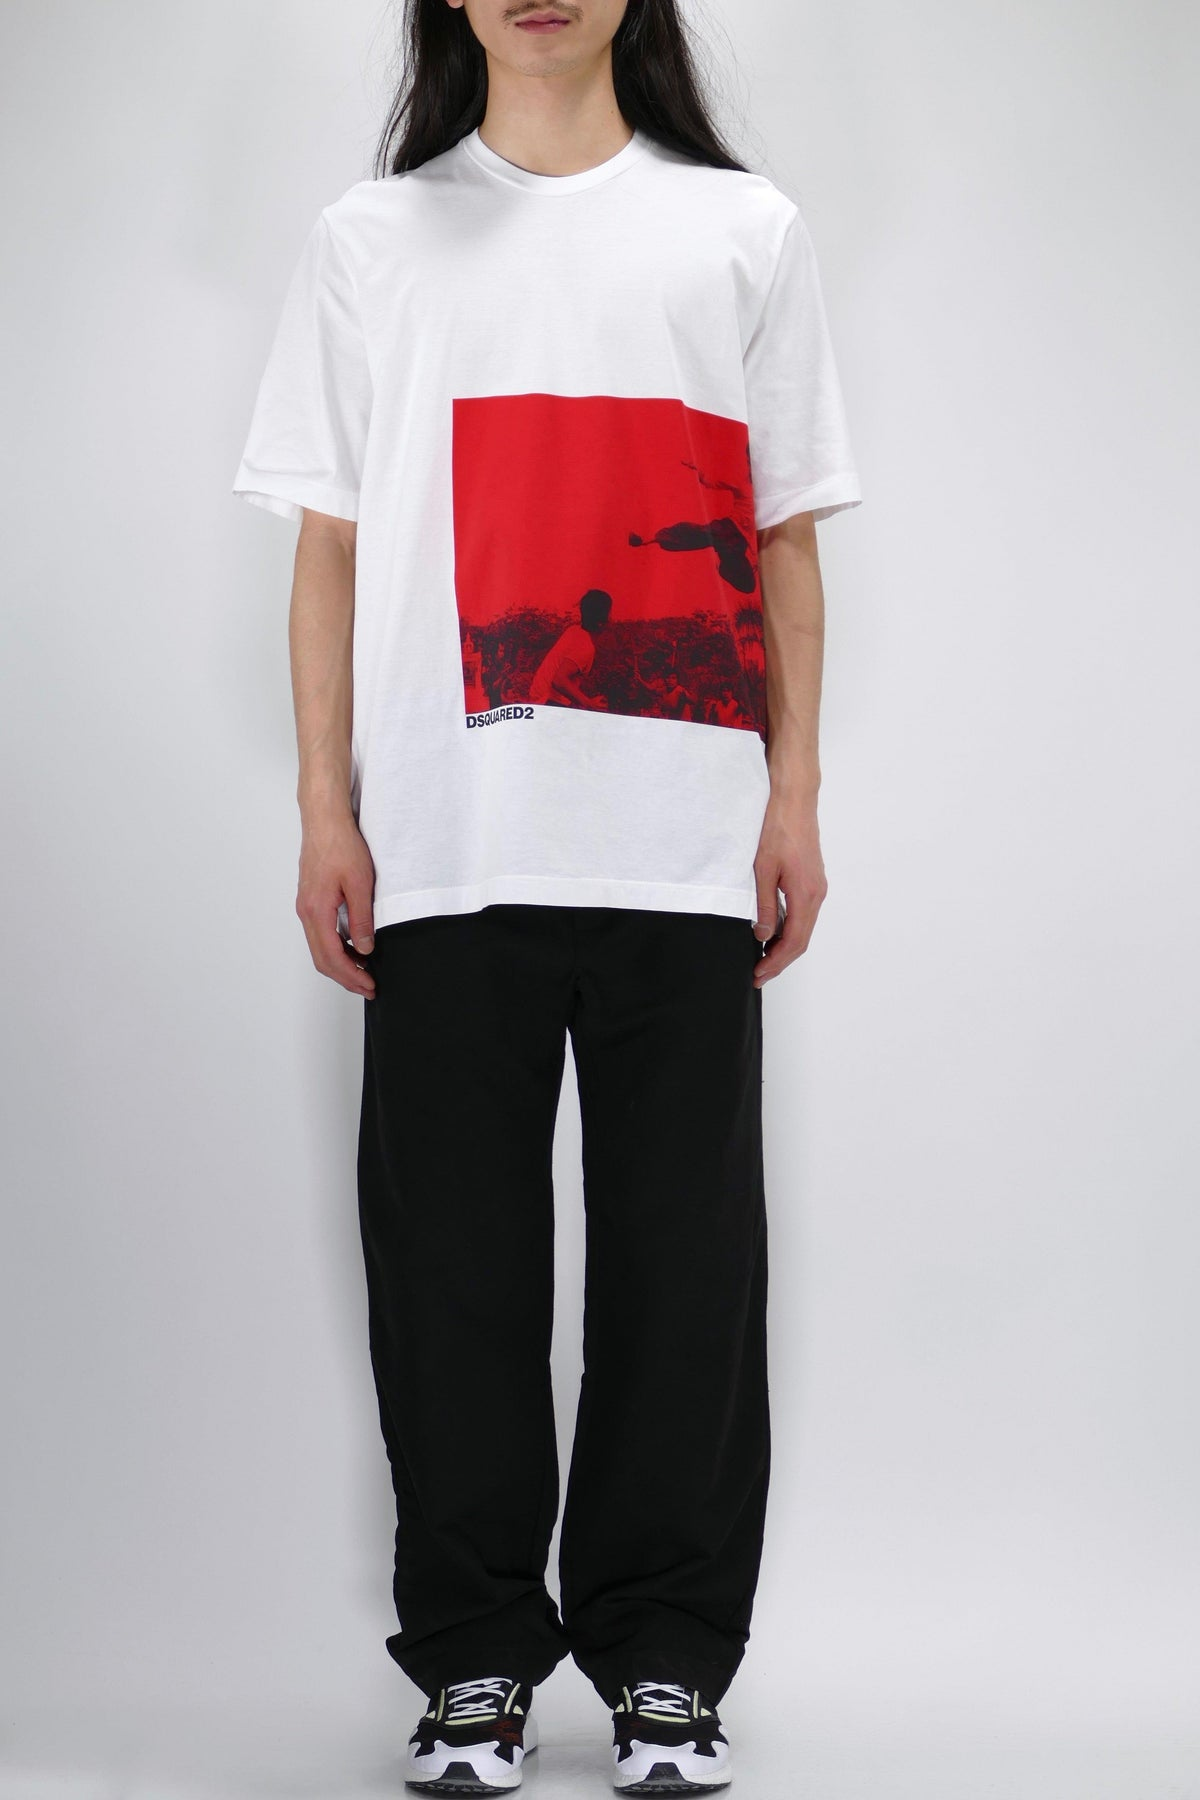 DSQUARED2 Slouch Fit Bruce Lee Graphic T-Shirt White